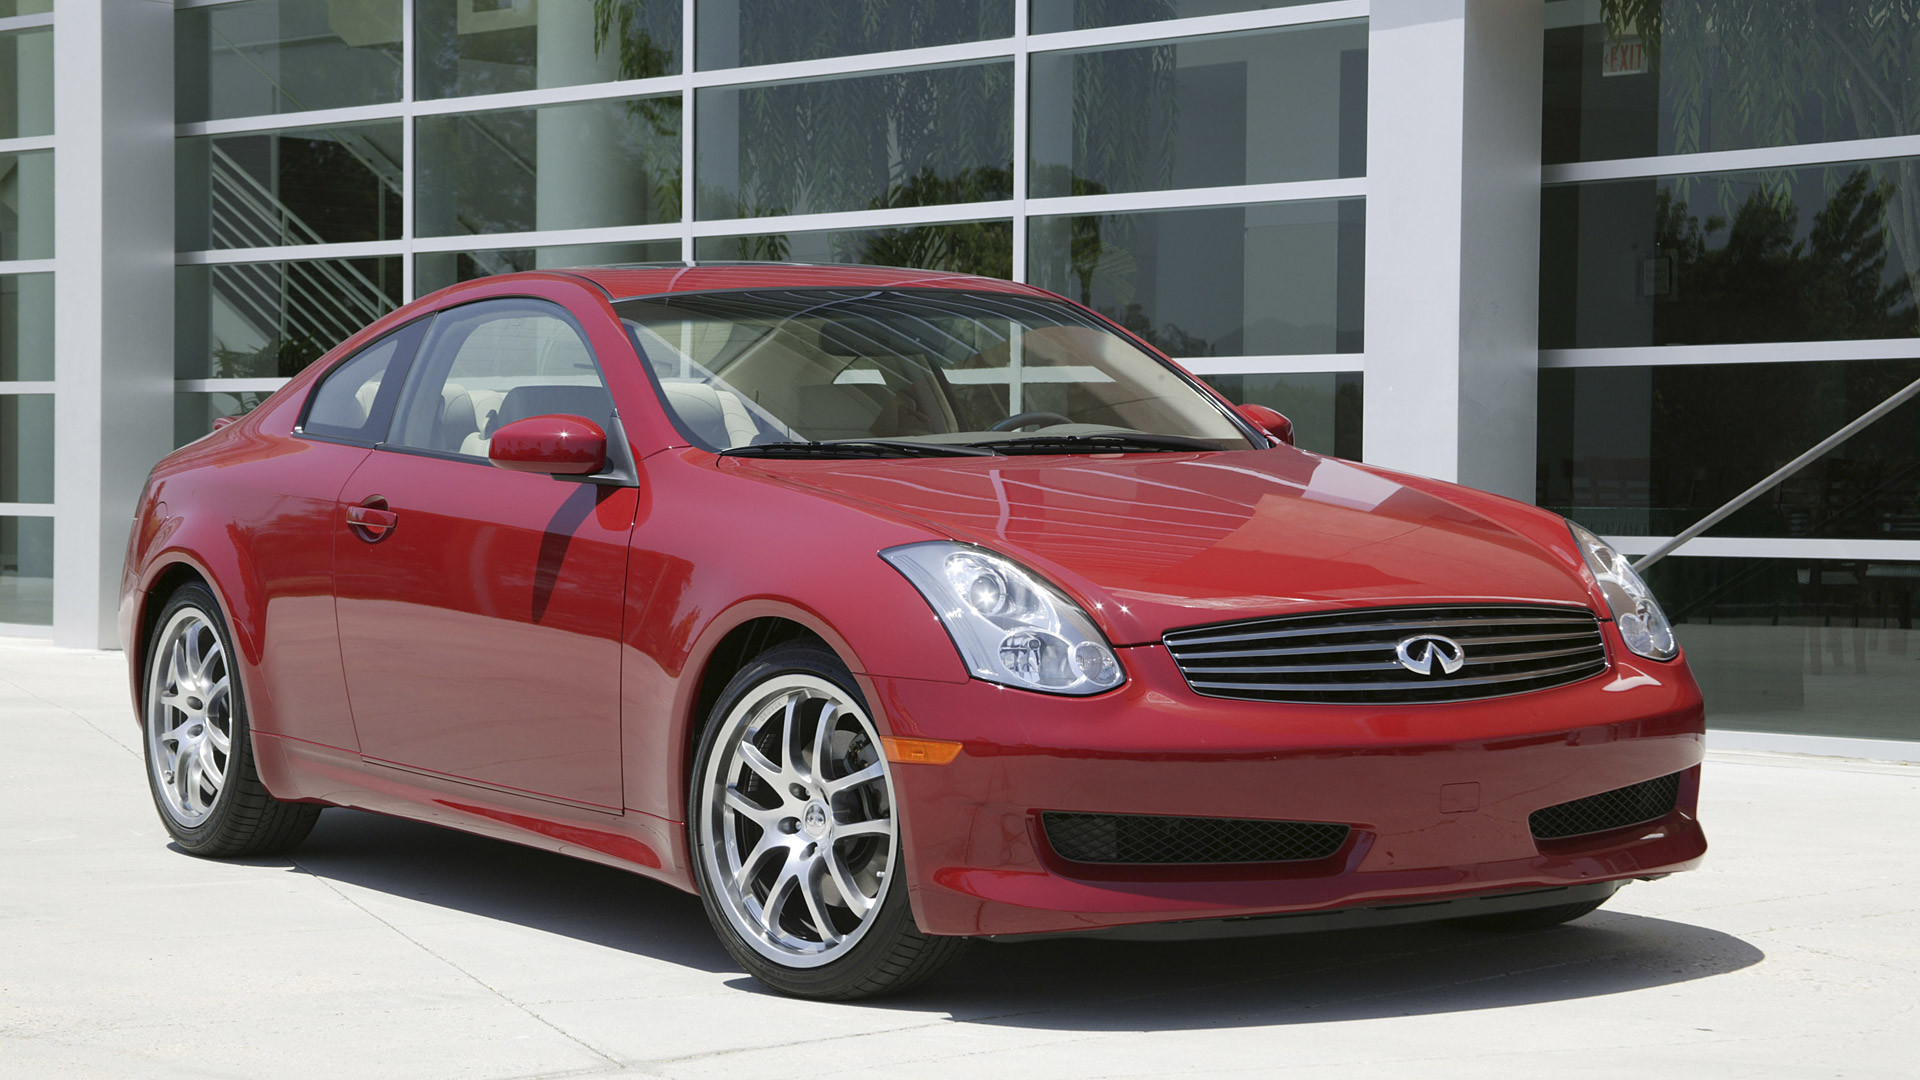 2005 Infiniti G35 Coupe Wallpapers HD Images WSupercars